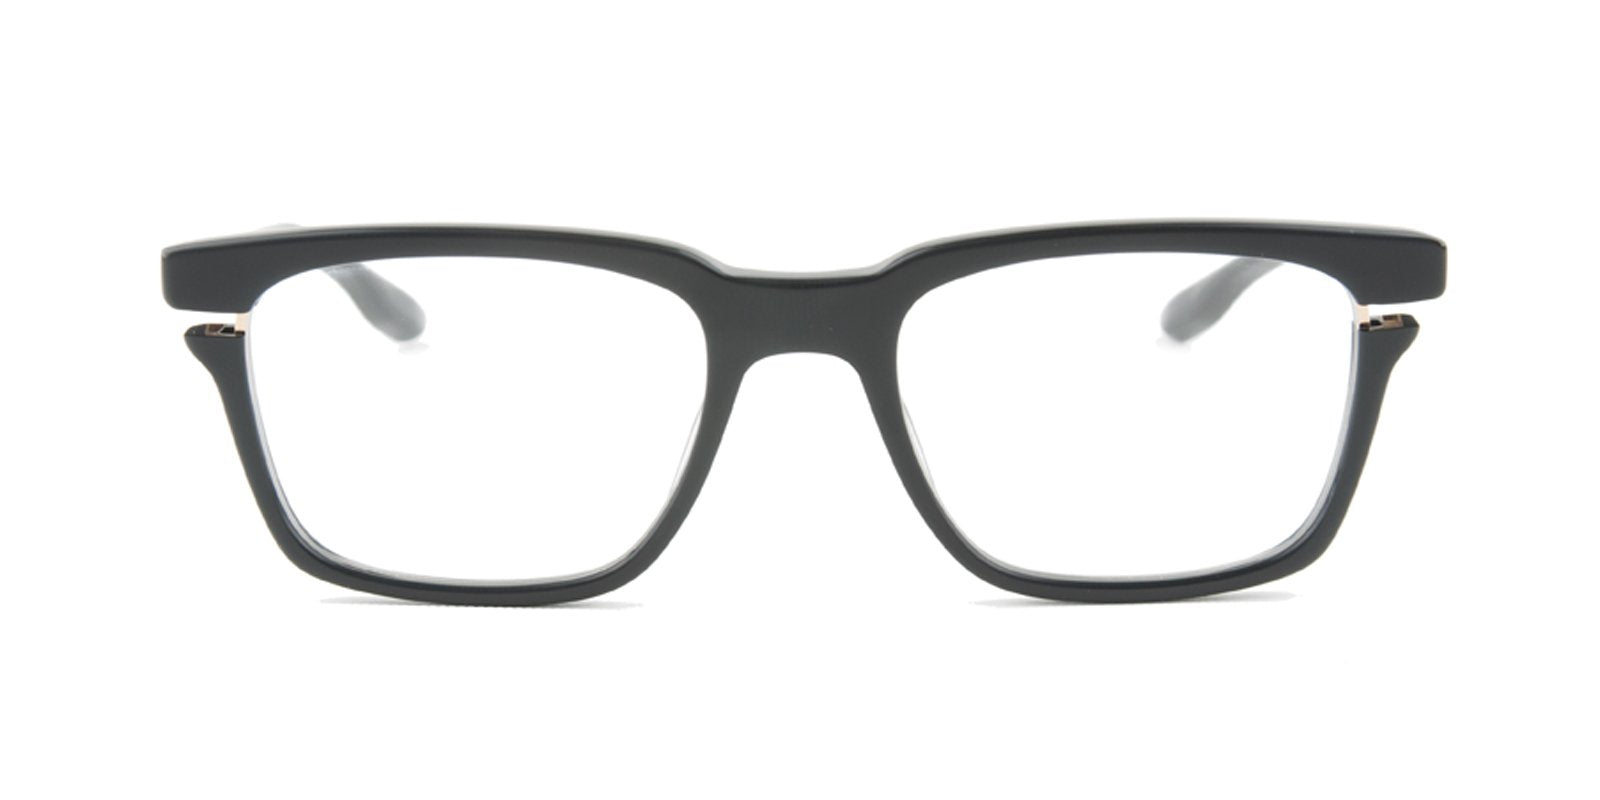 Dita - Avec Black Rectangular Unisex Eyeglasses - 52mm-Eyeglasses-Designer Eyes